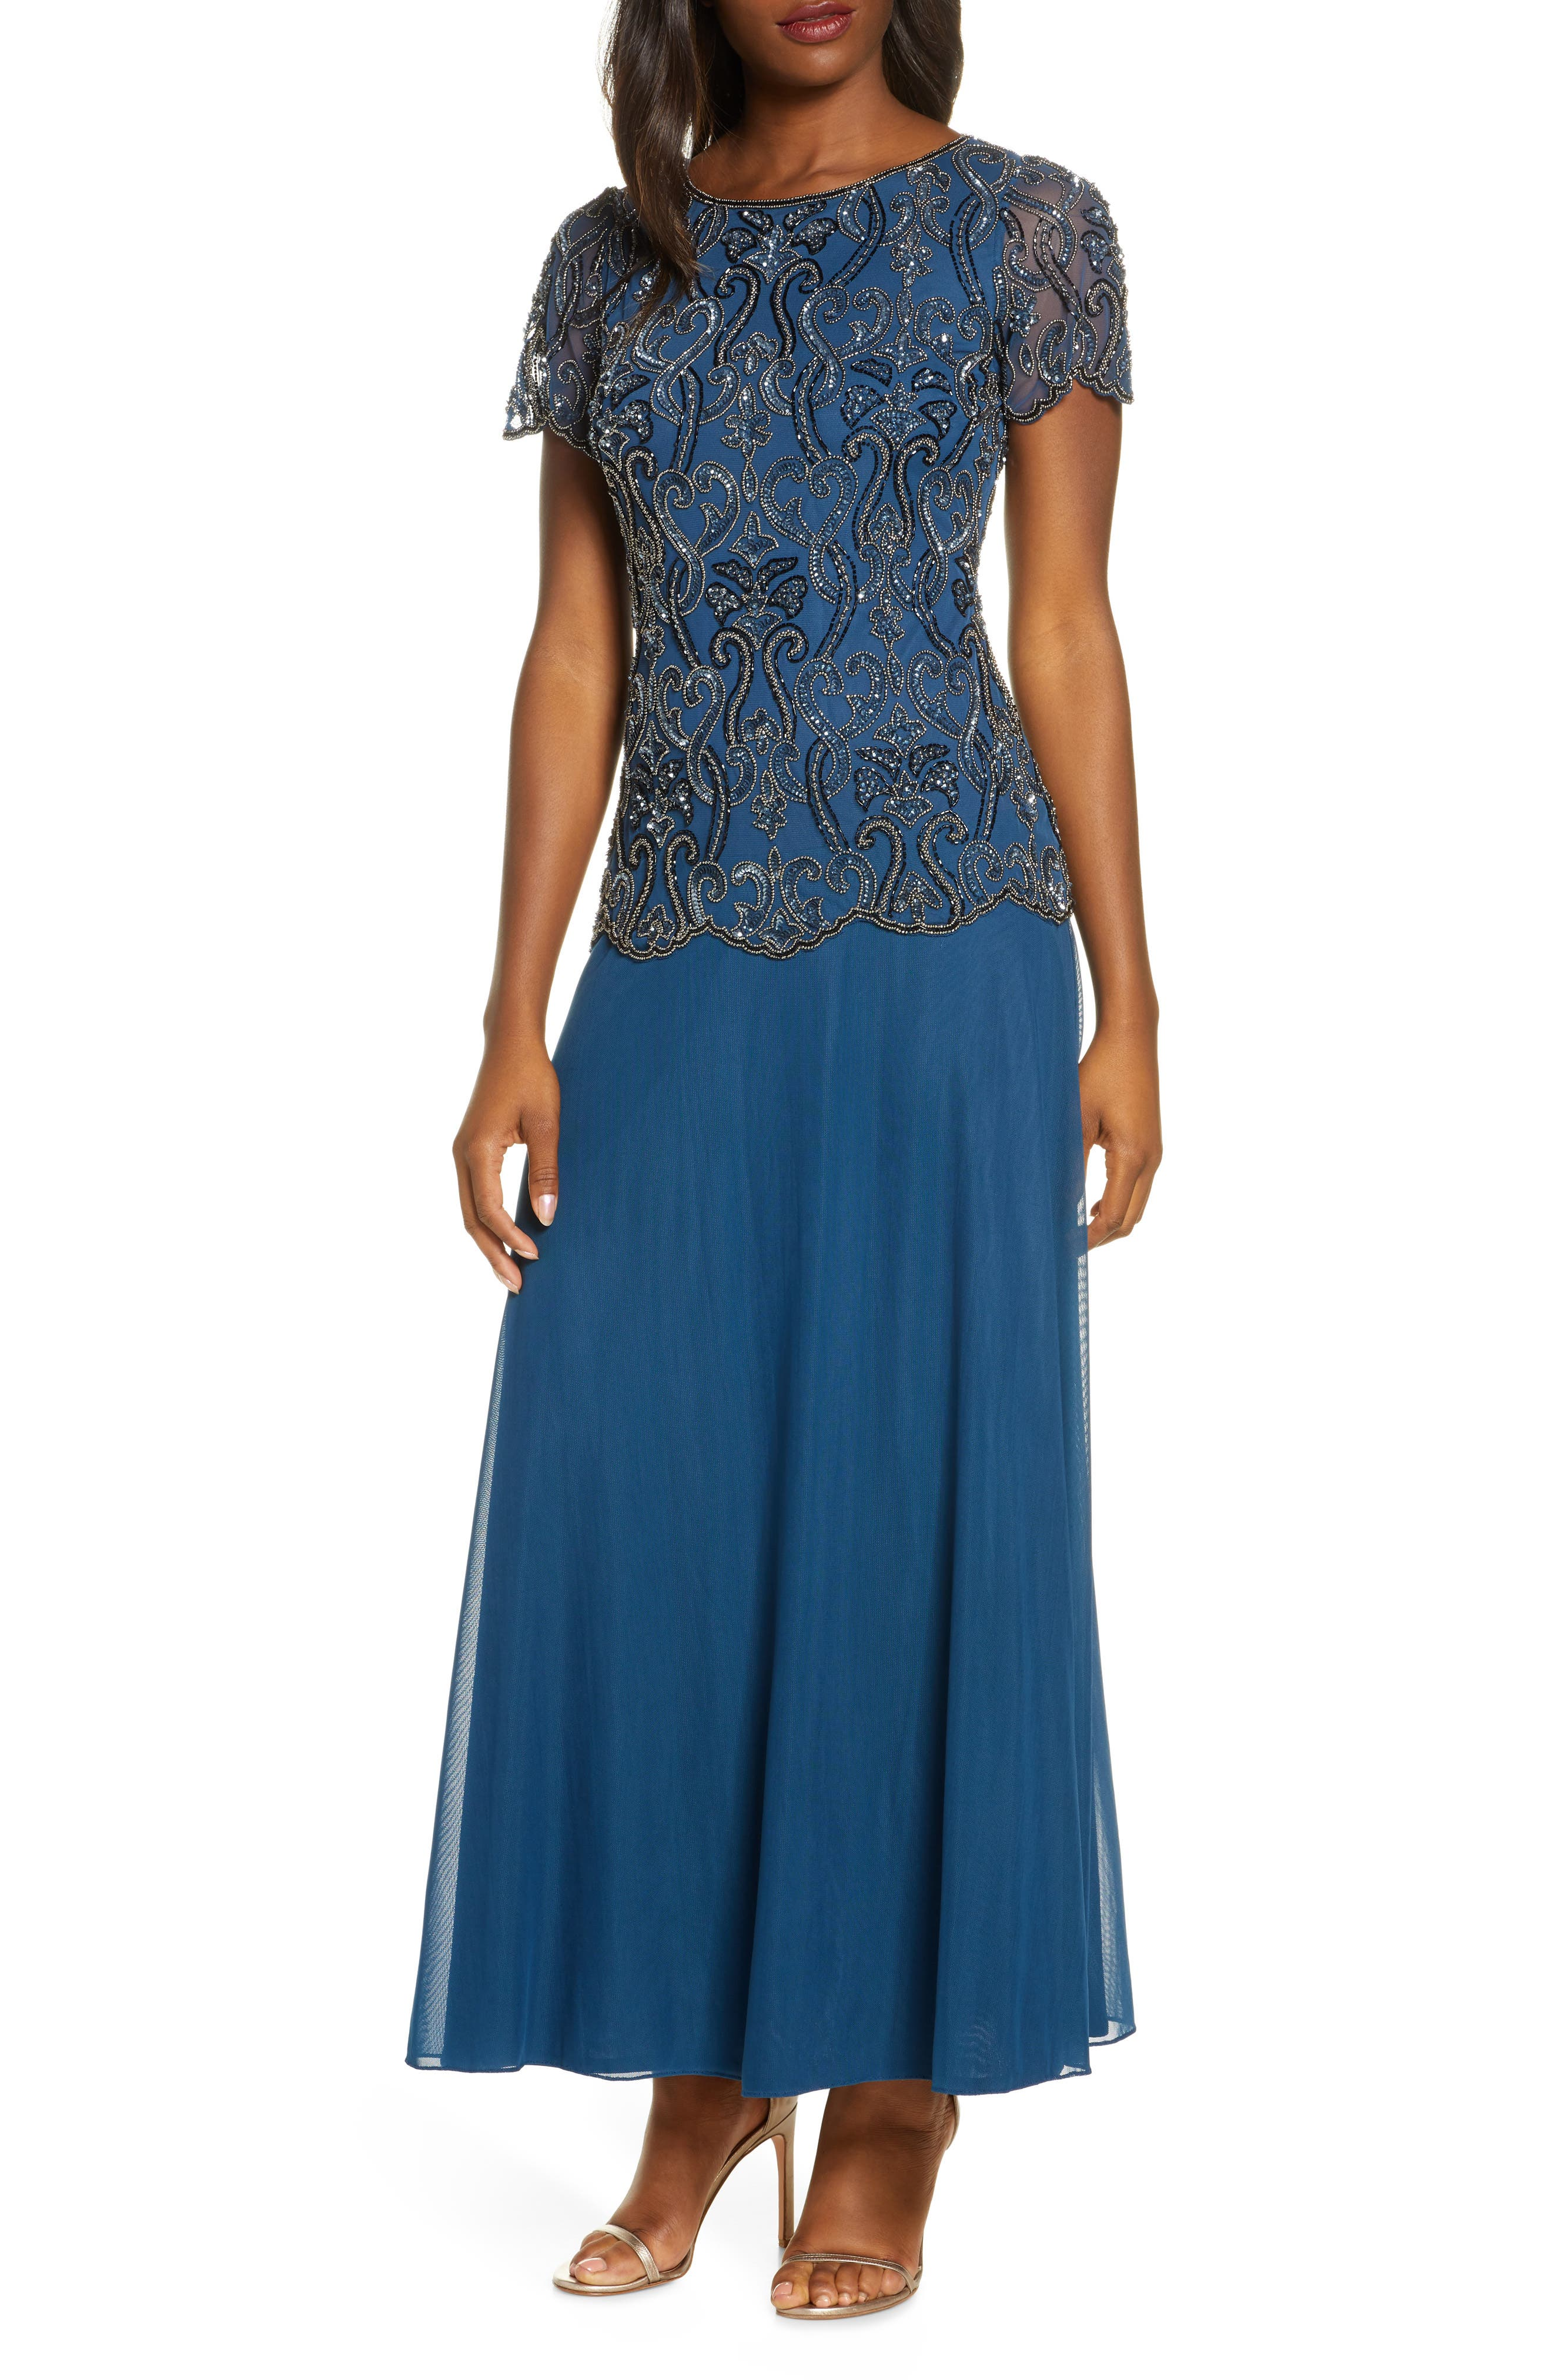 Vintage 1920s Dresses – Where to Buy Womens Pisarro Nights Bead Embellished Mock Two-Piece Gown $238.00 AT vintagedancer.com